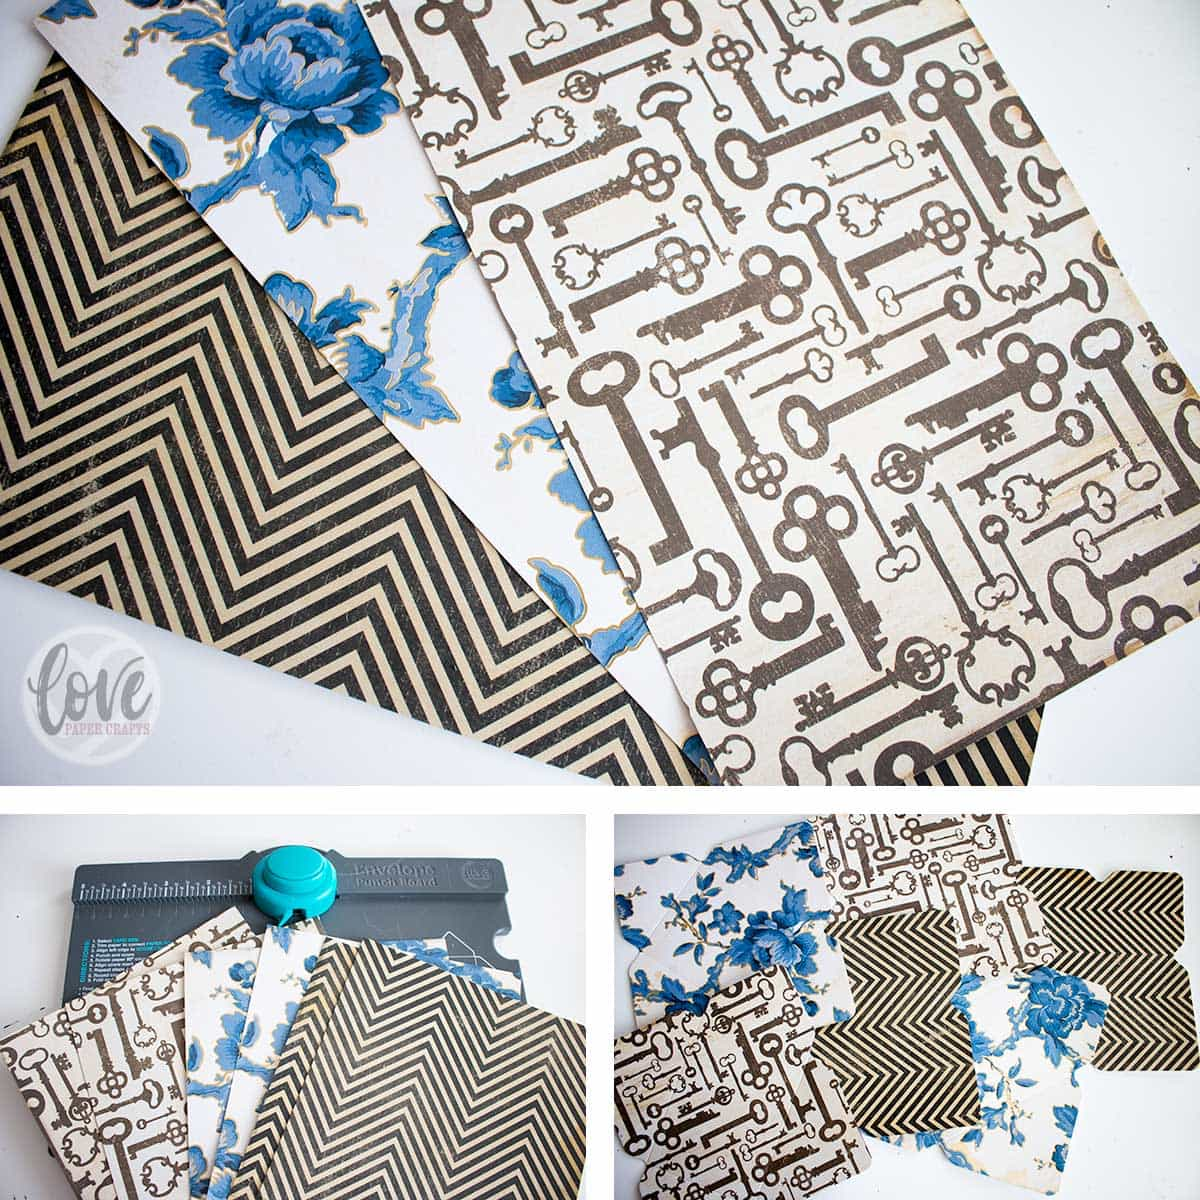 What to Do With Extra Scrapbooking Paper